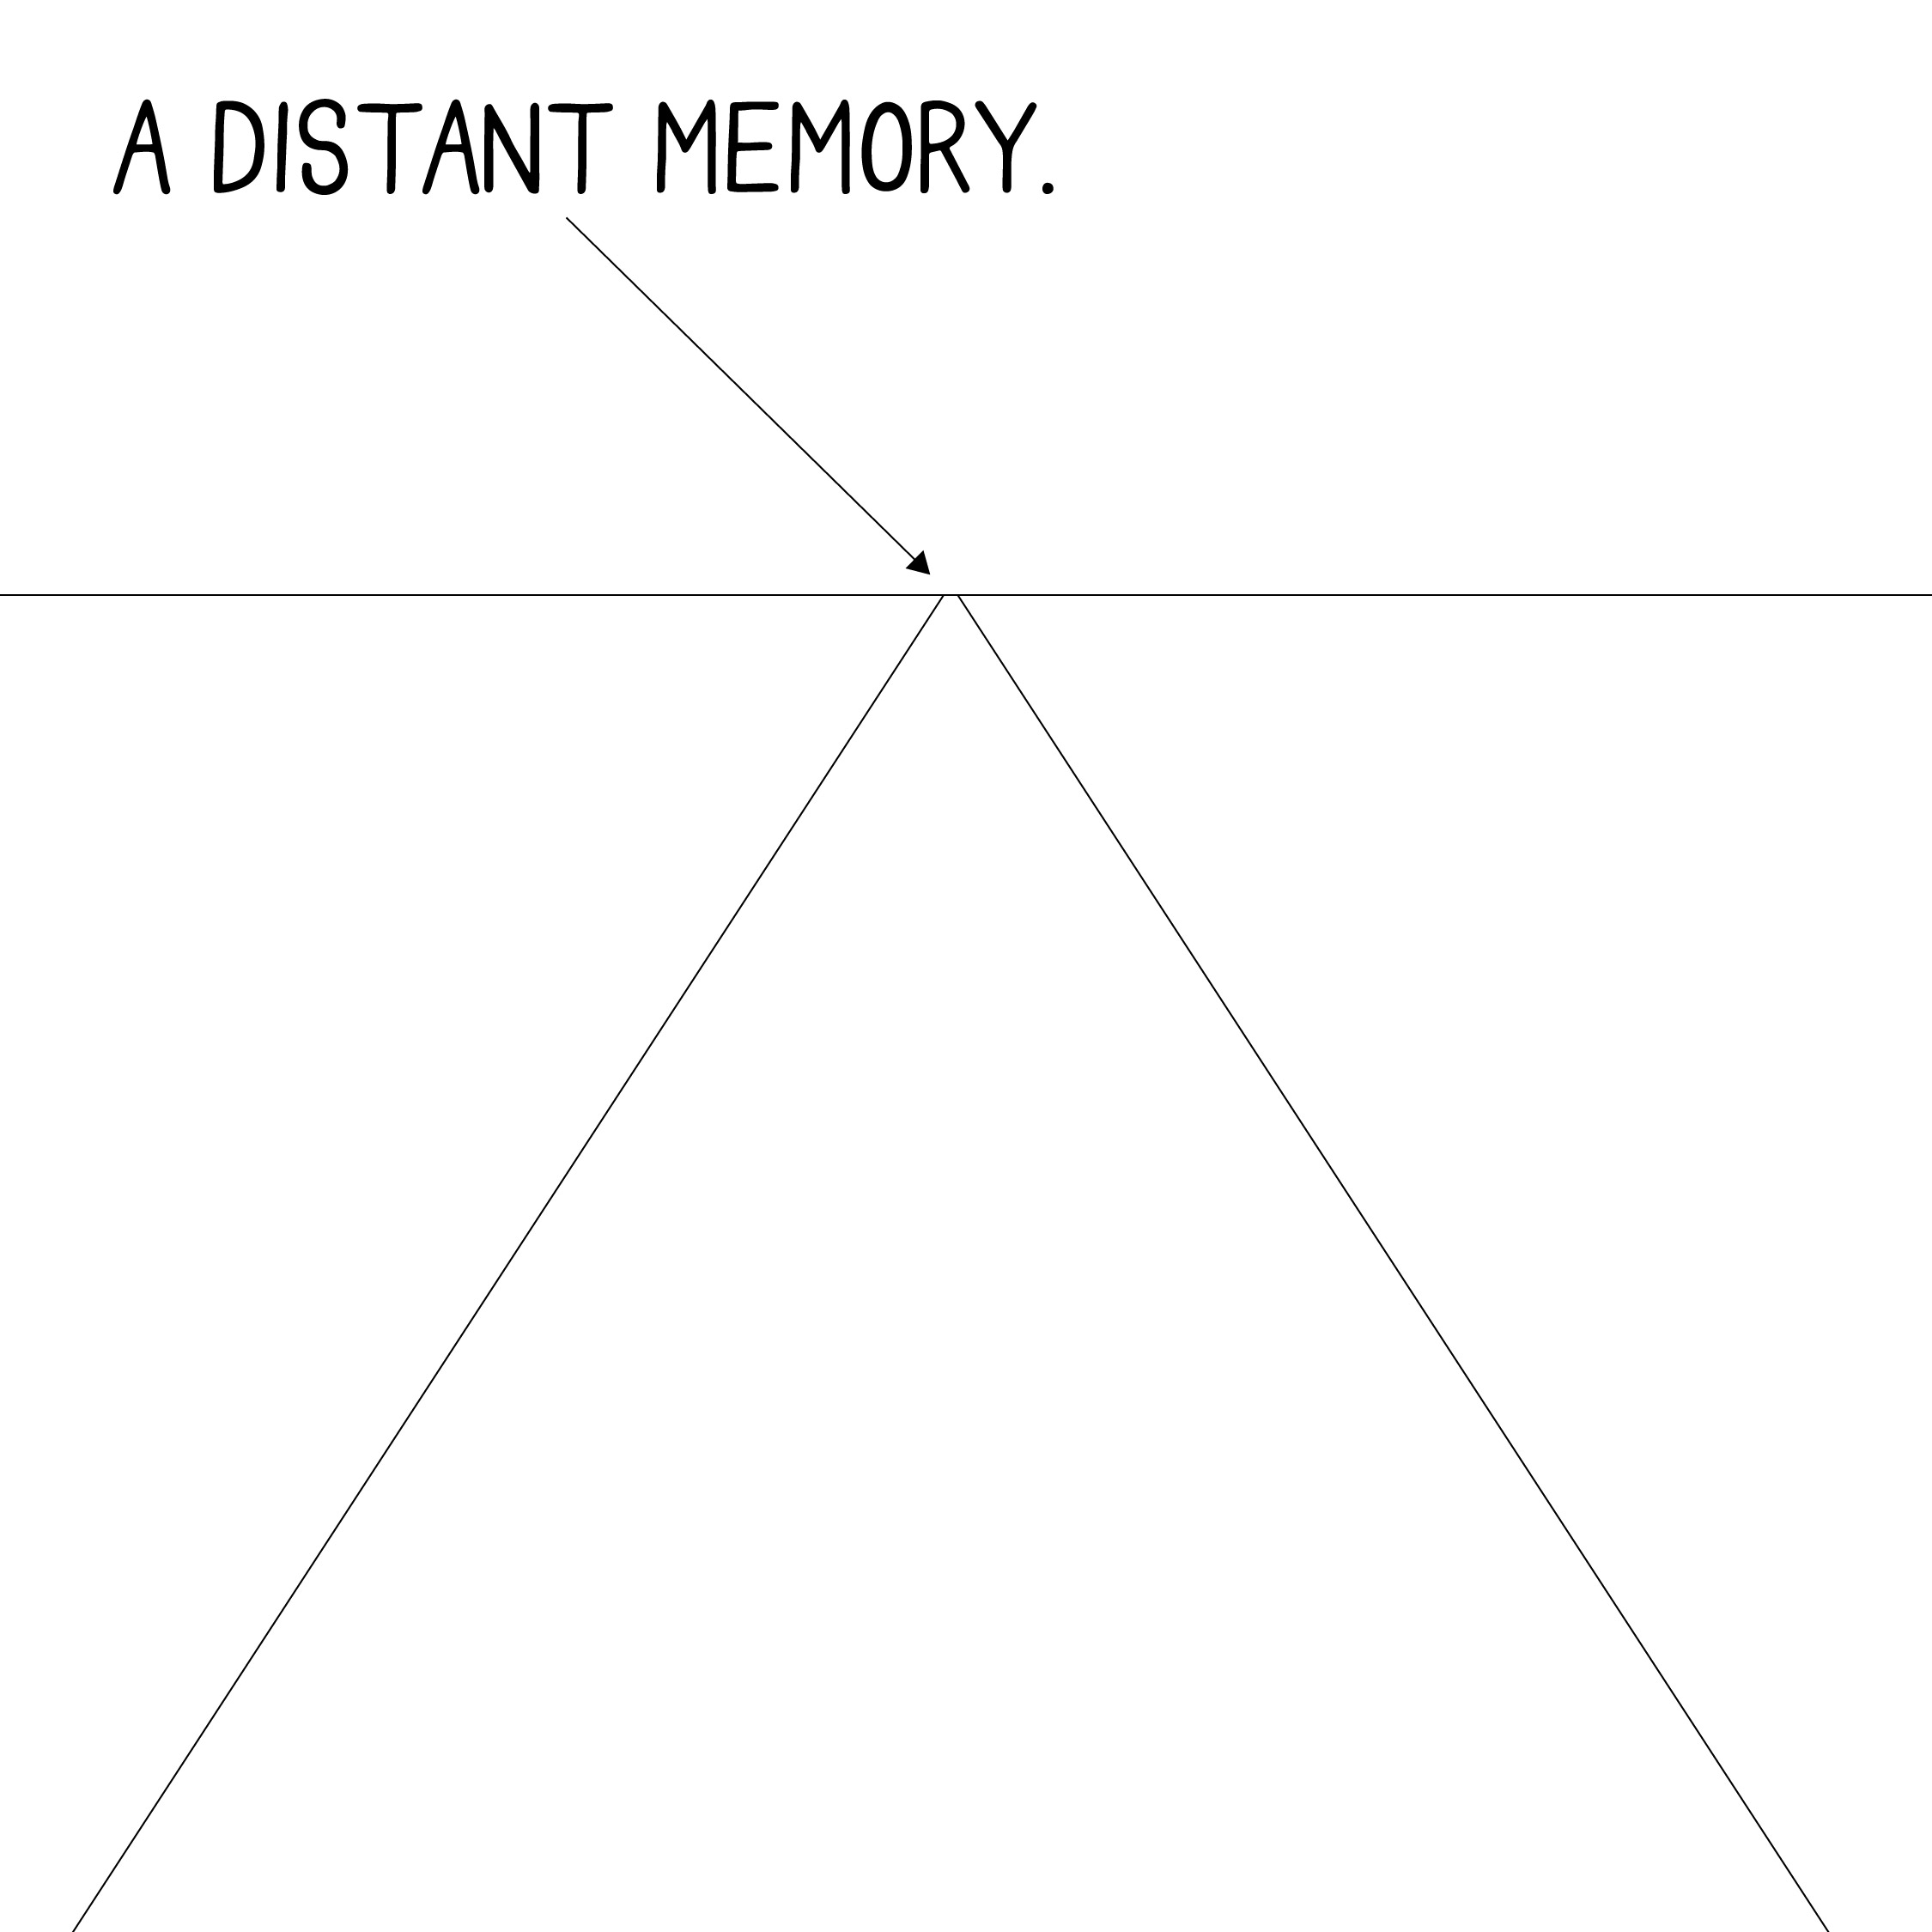 distantmemory-01.jpg